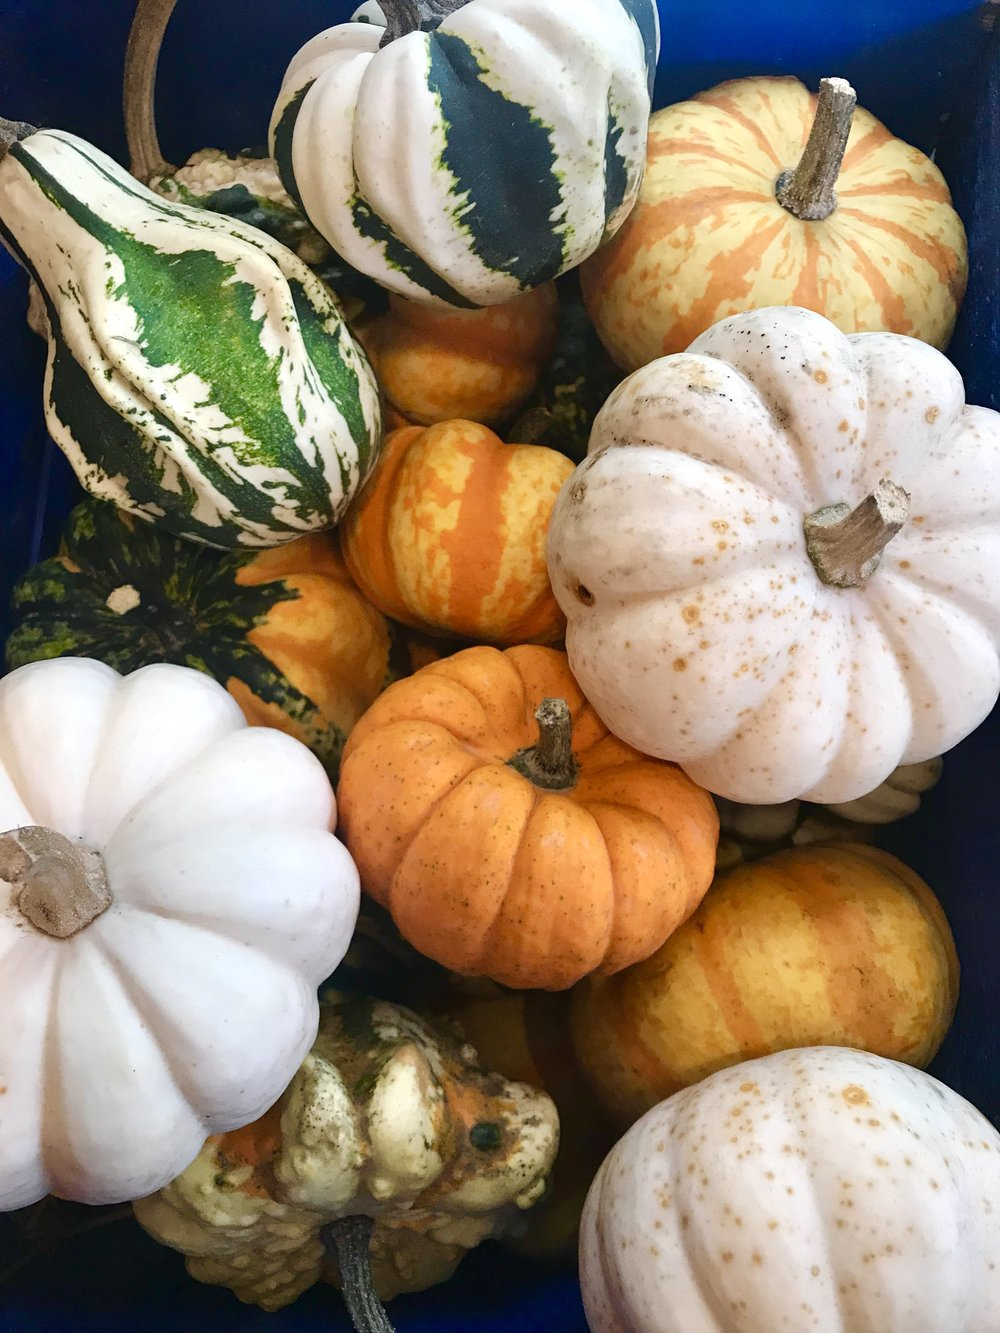 Mini pumpkins & gourds are here! - 3 for $2! Snag some mini pumpkins to put around your home! The cutest addition to your fall table or porch!